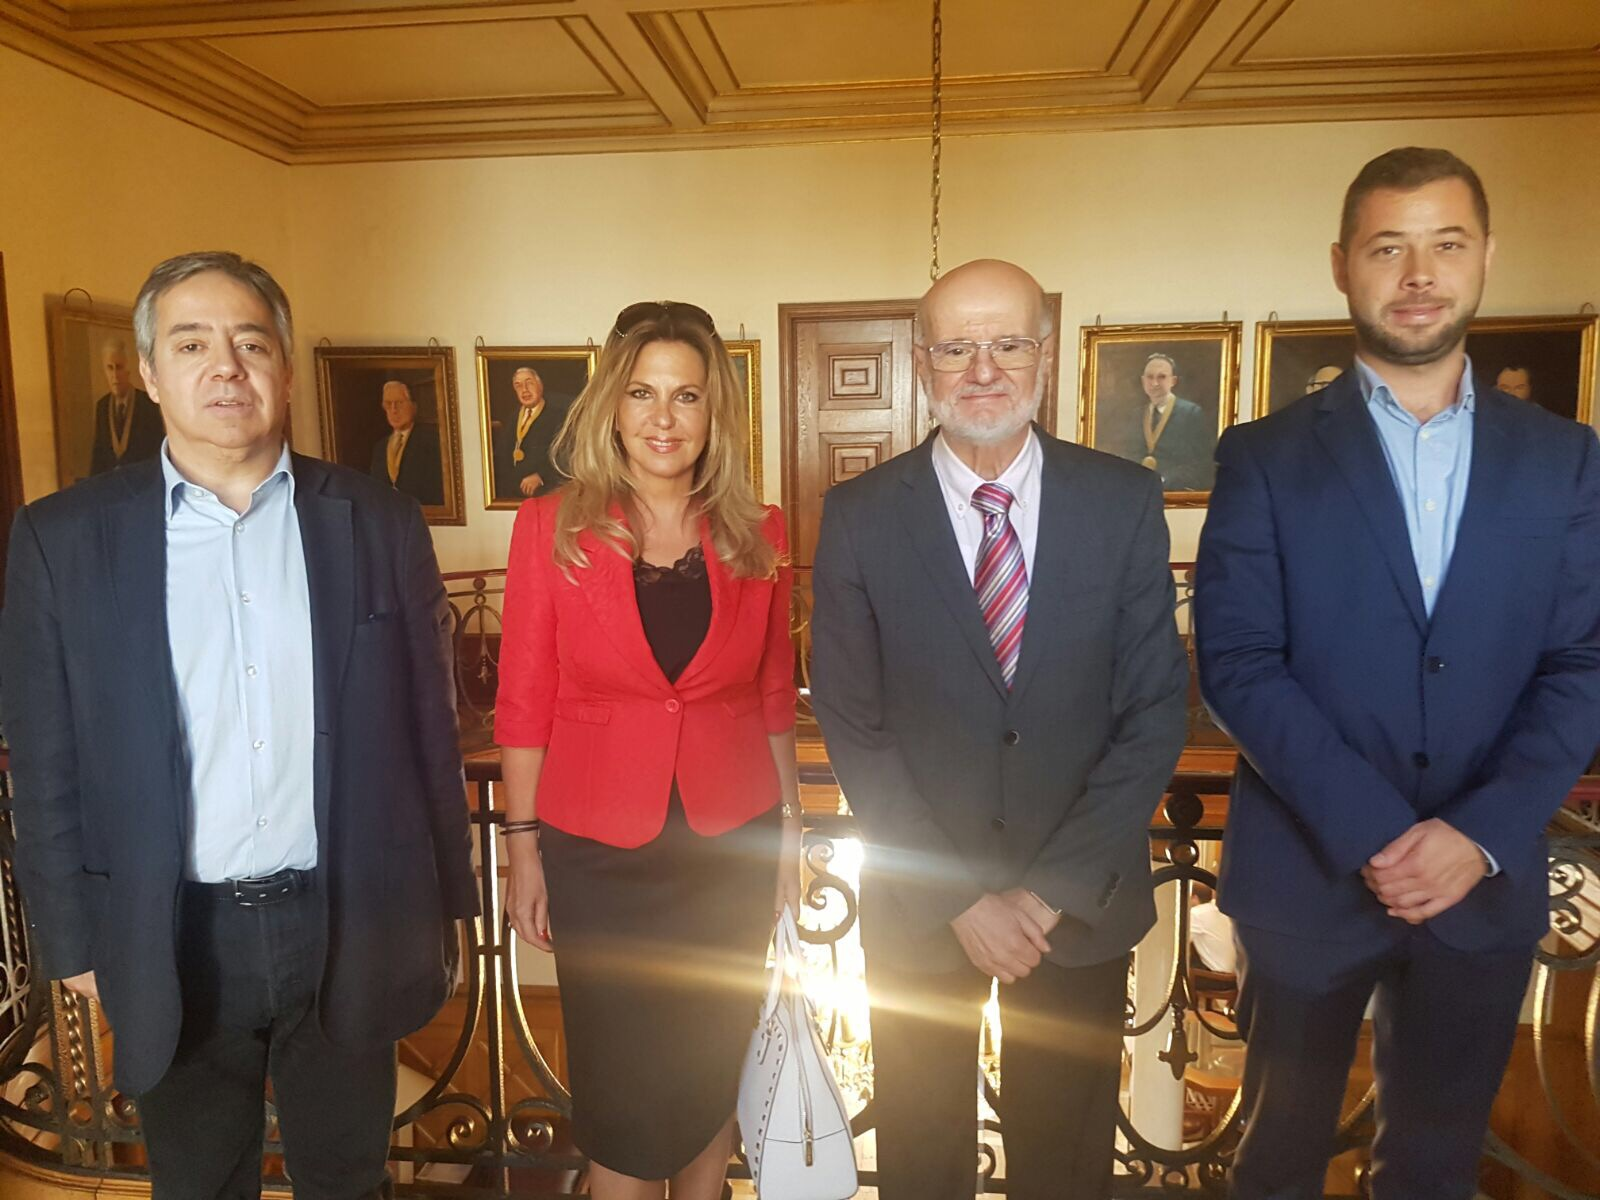 Mr. Pedro Meireles Sobral, Ms. Rosa Sanches, Prof. Szász András and Mr. Soma Benke